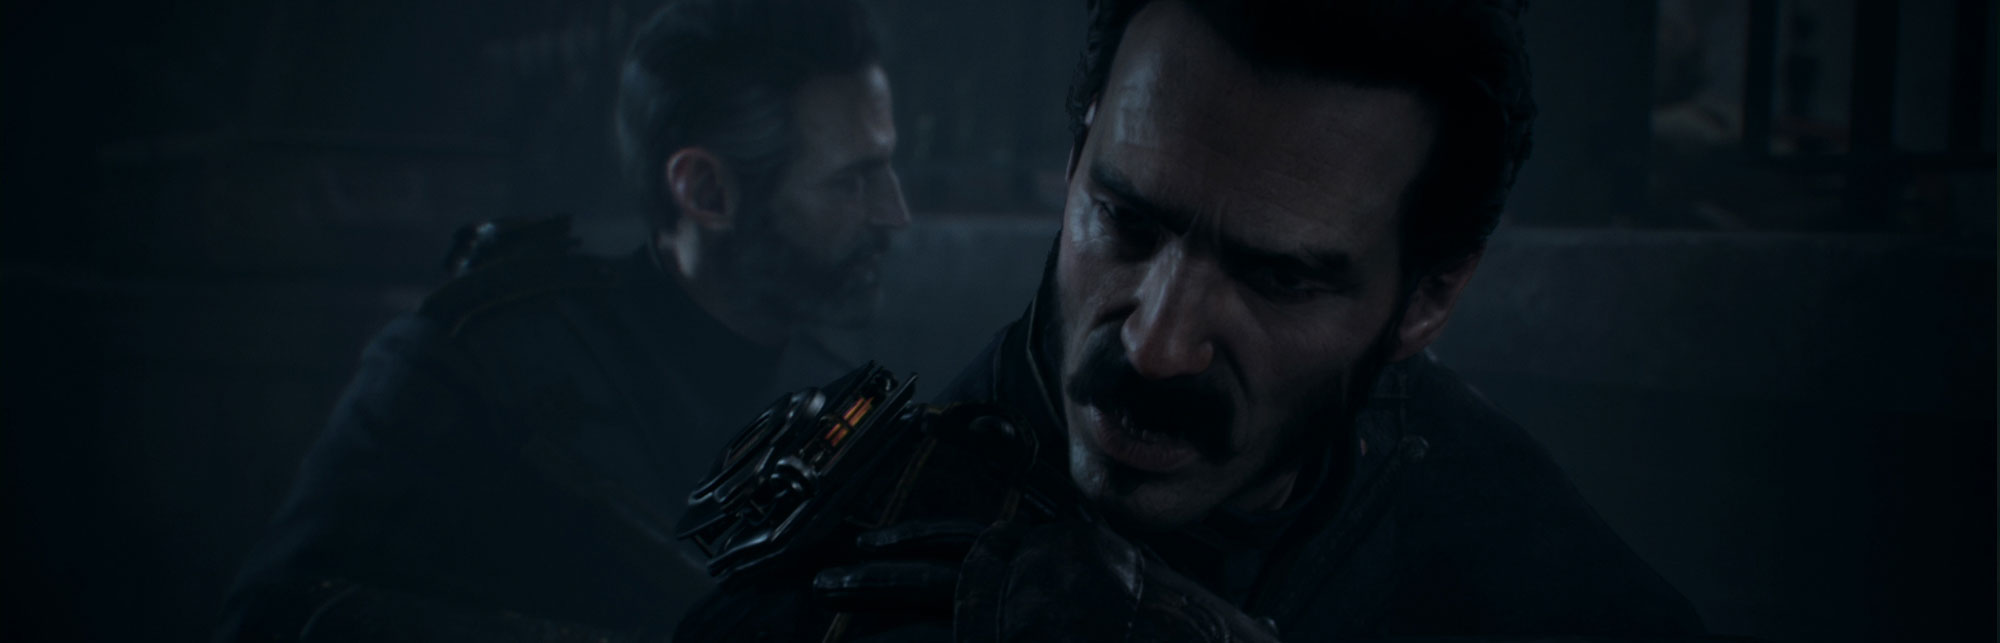 THE ORDER 1886 – GRA CZY FILM?